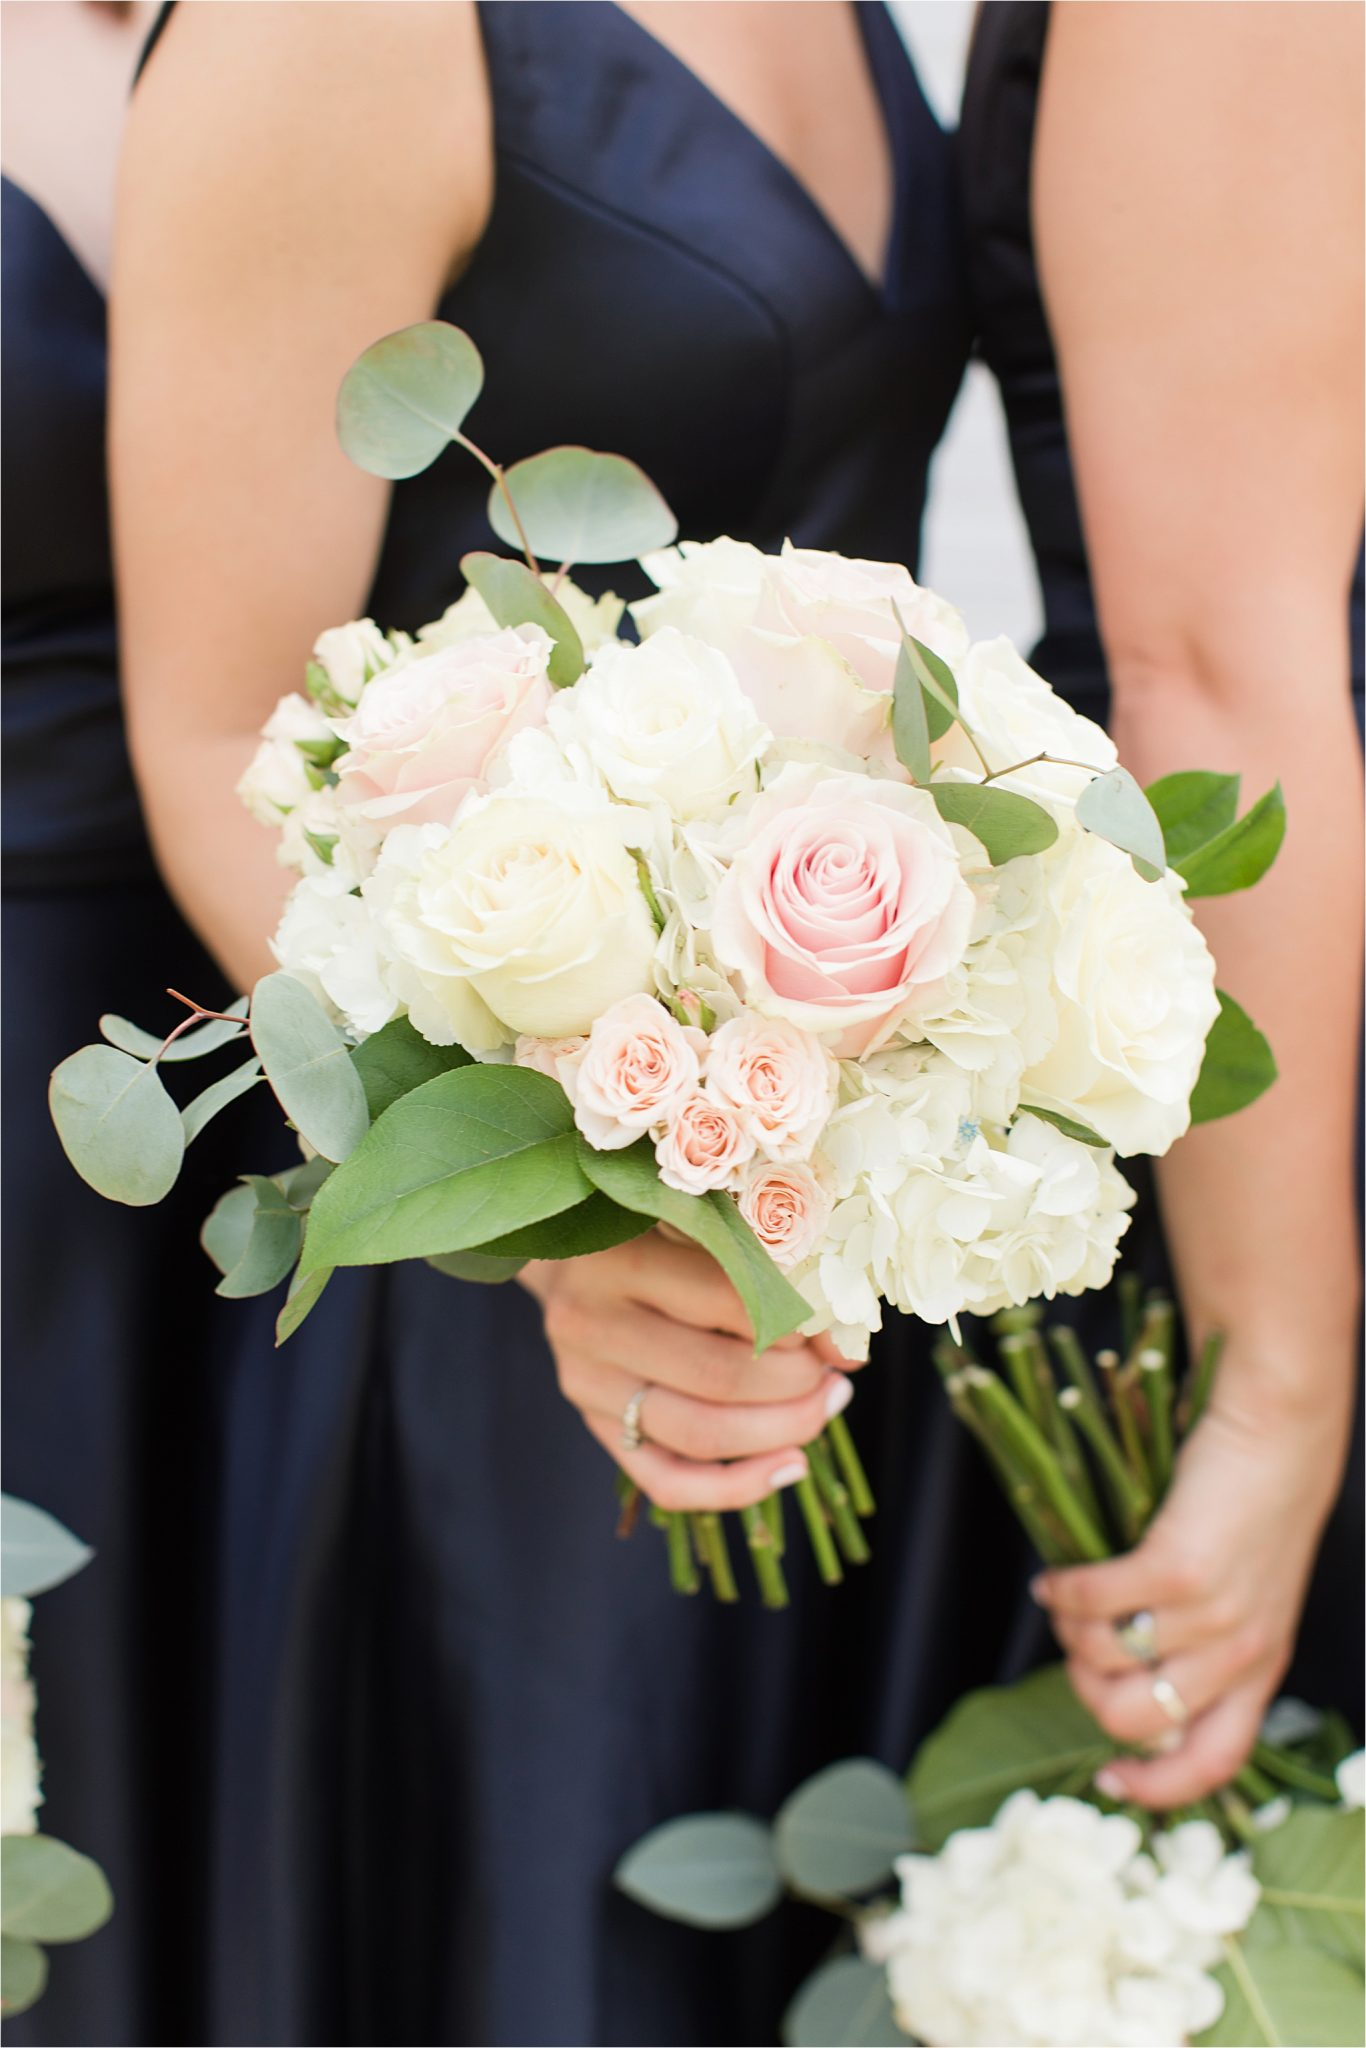 Sonnet House, Birmingham Alabama Wedding Photographer, Wedding bouquet